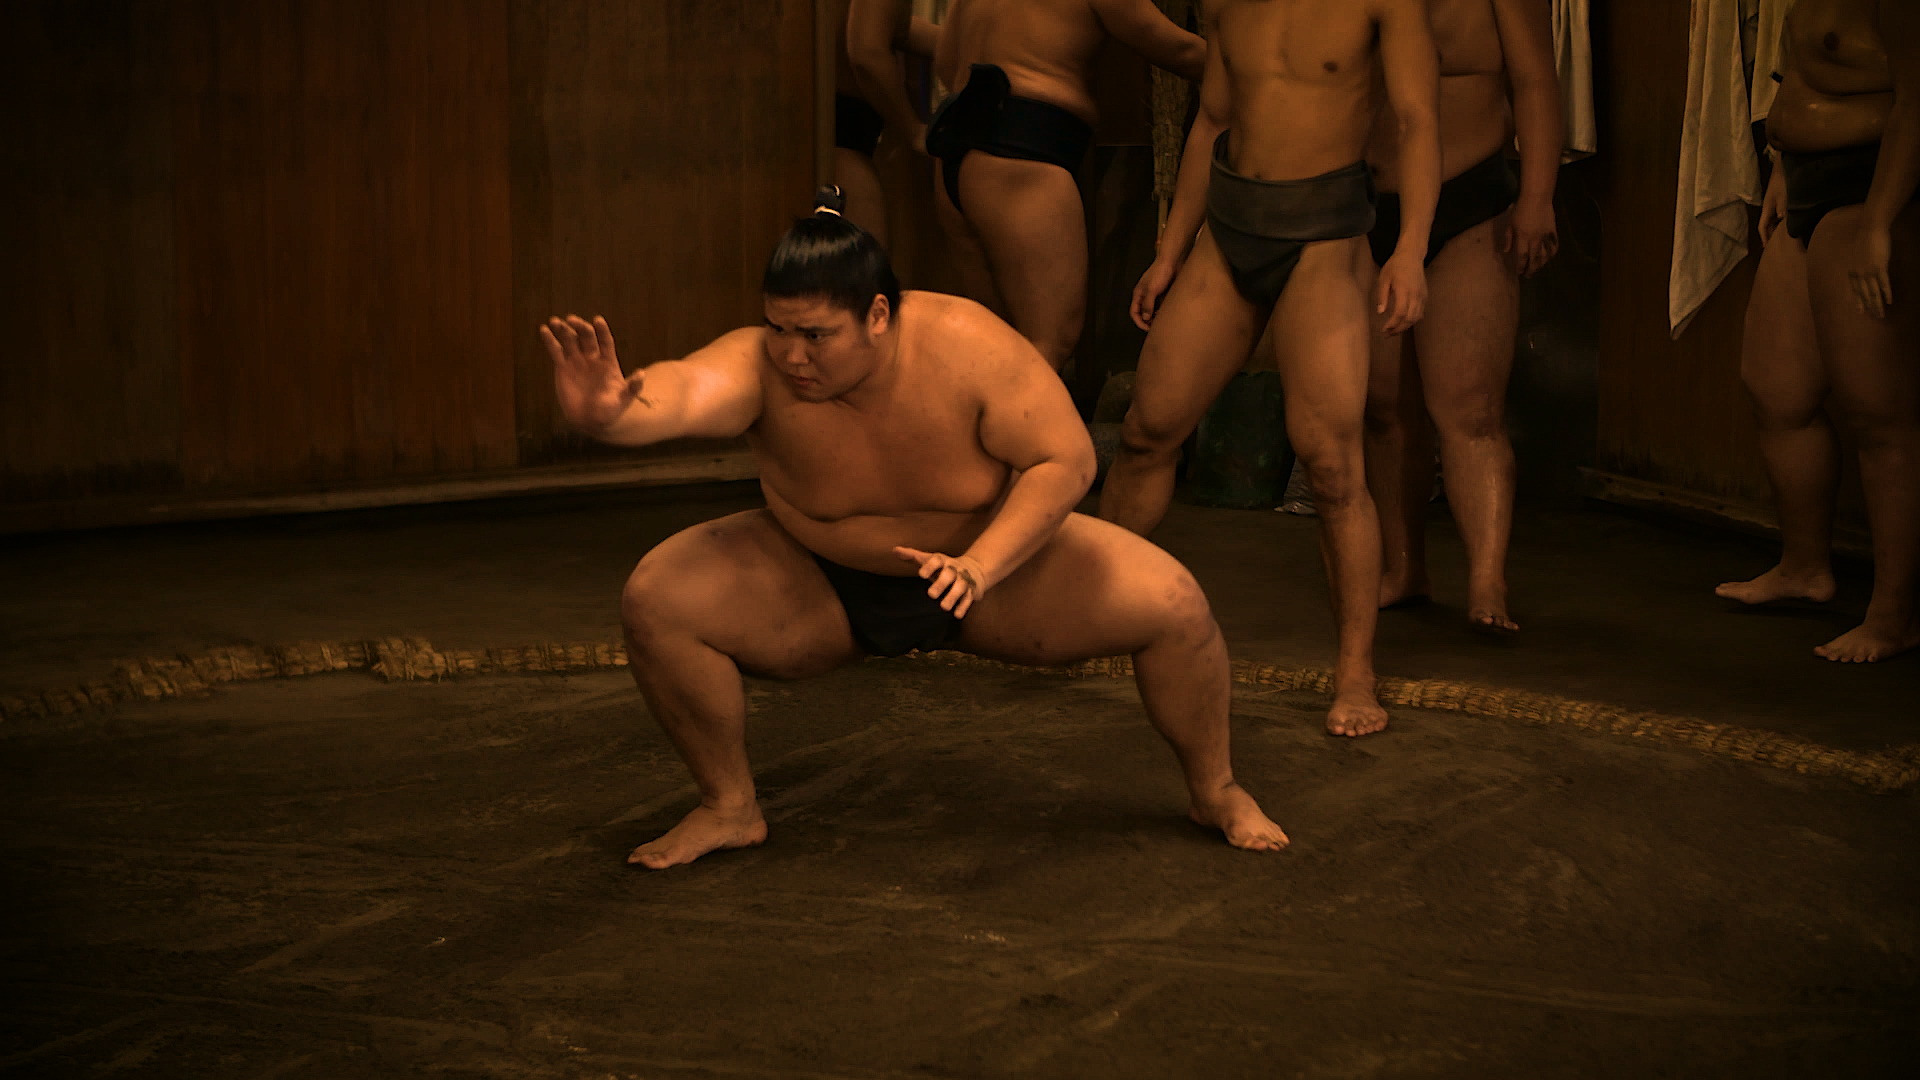 Sumo with his right hand extended